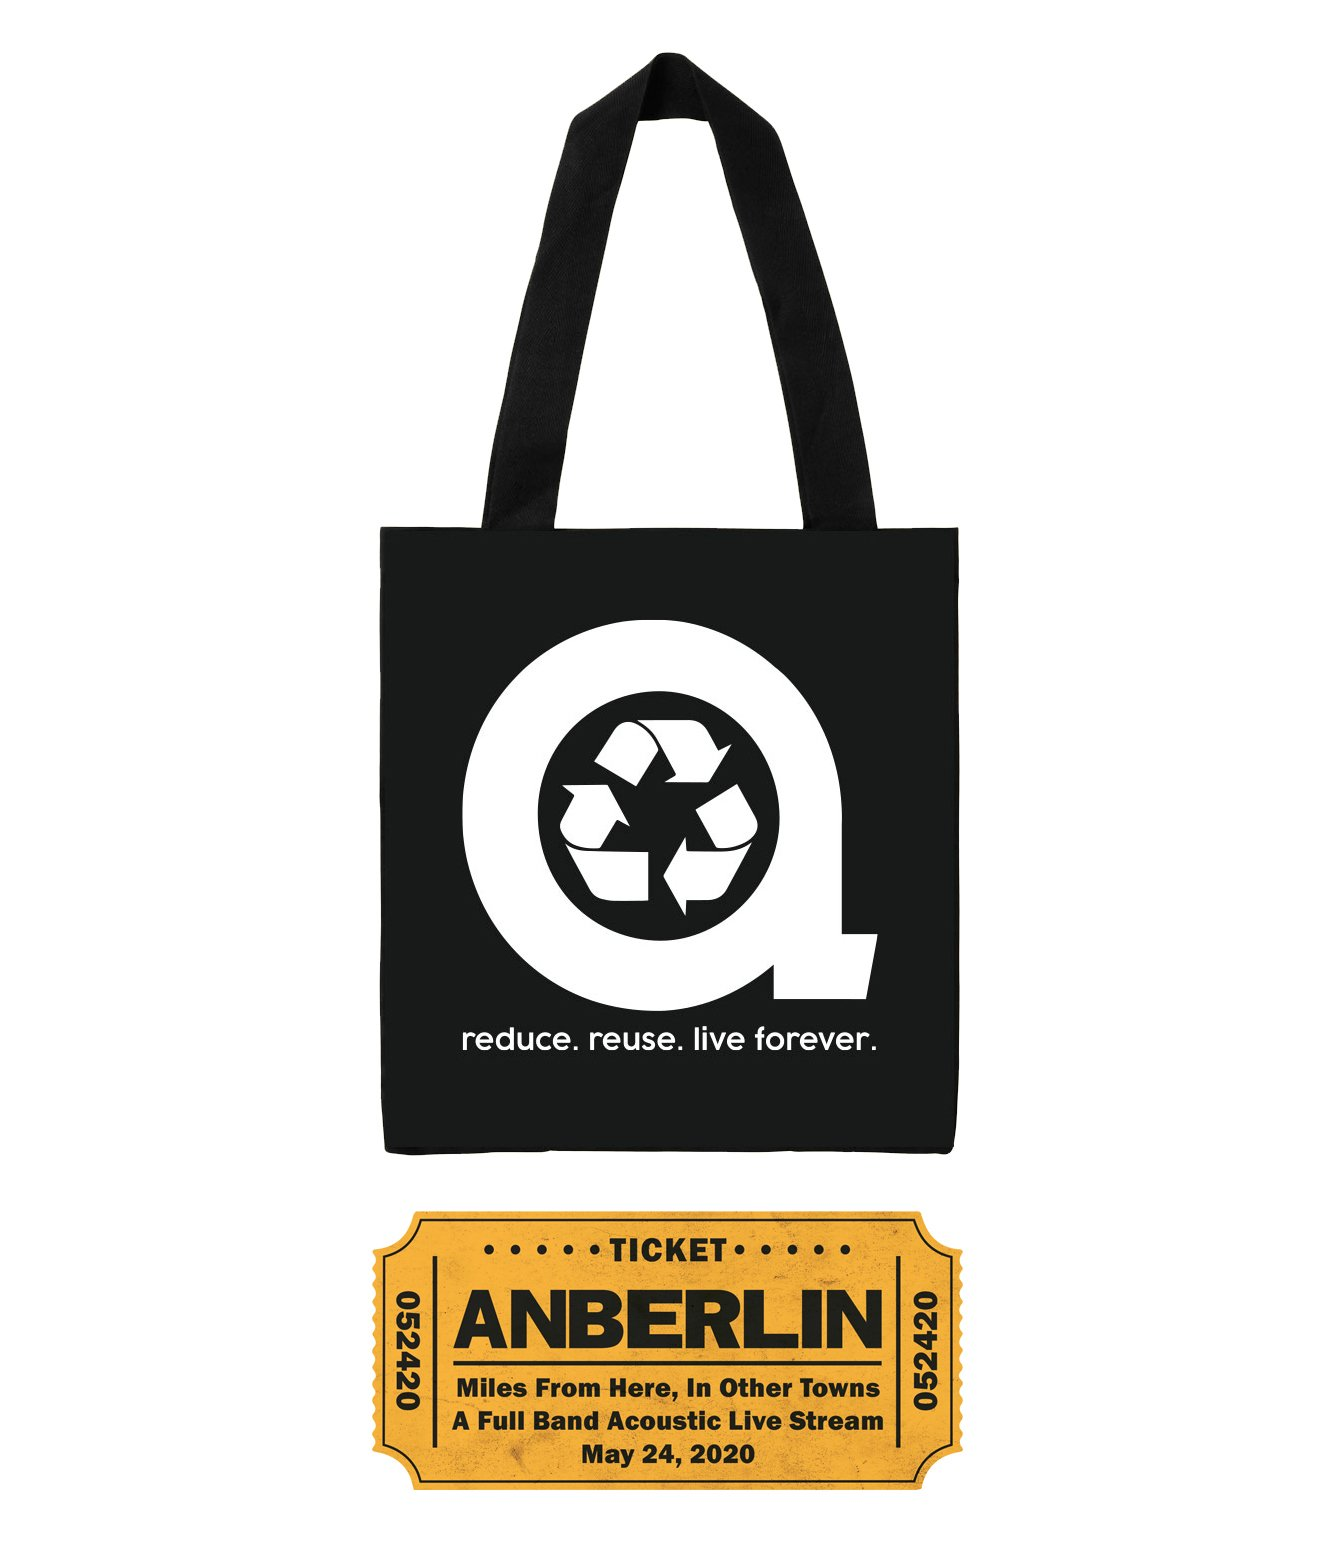 Anberlin Miles From Here In Other Towns - Live Stream Bundle #3